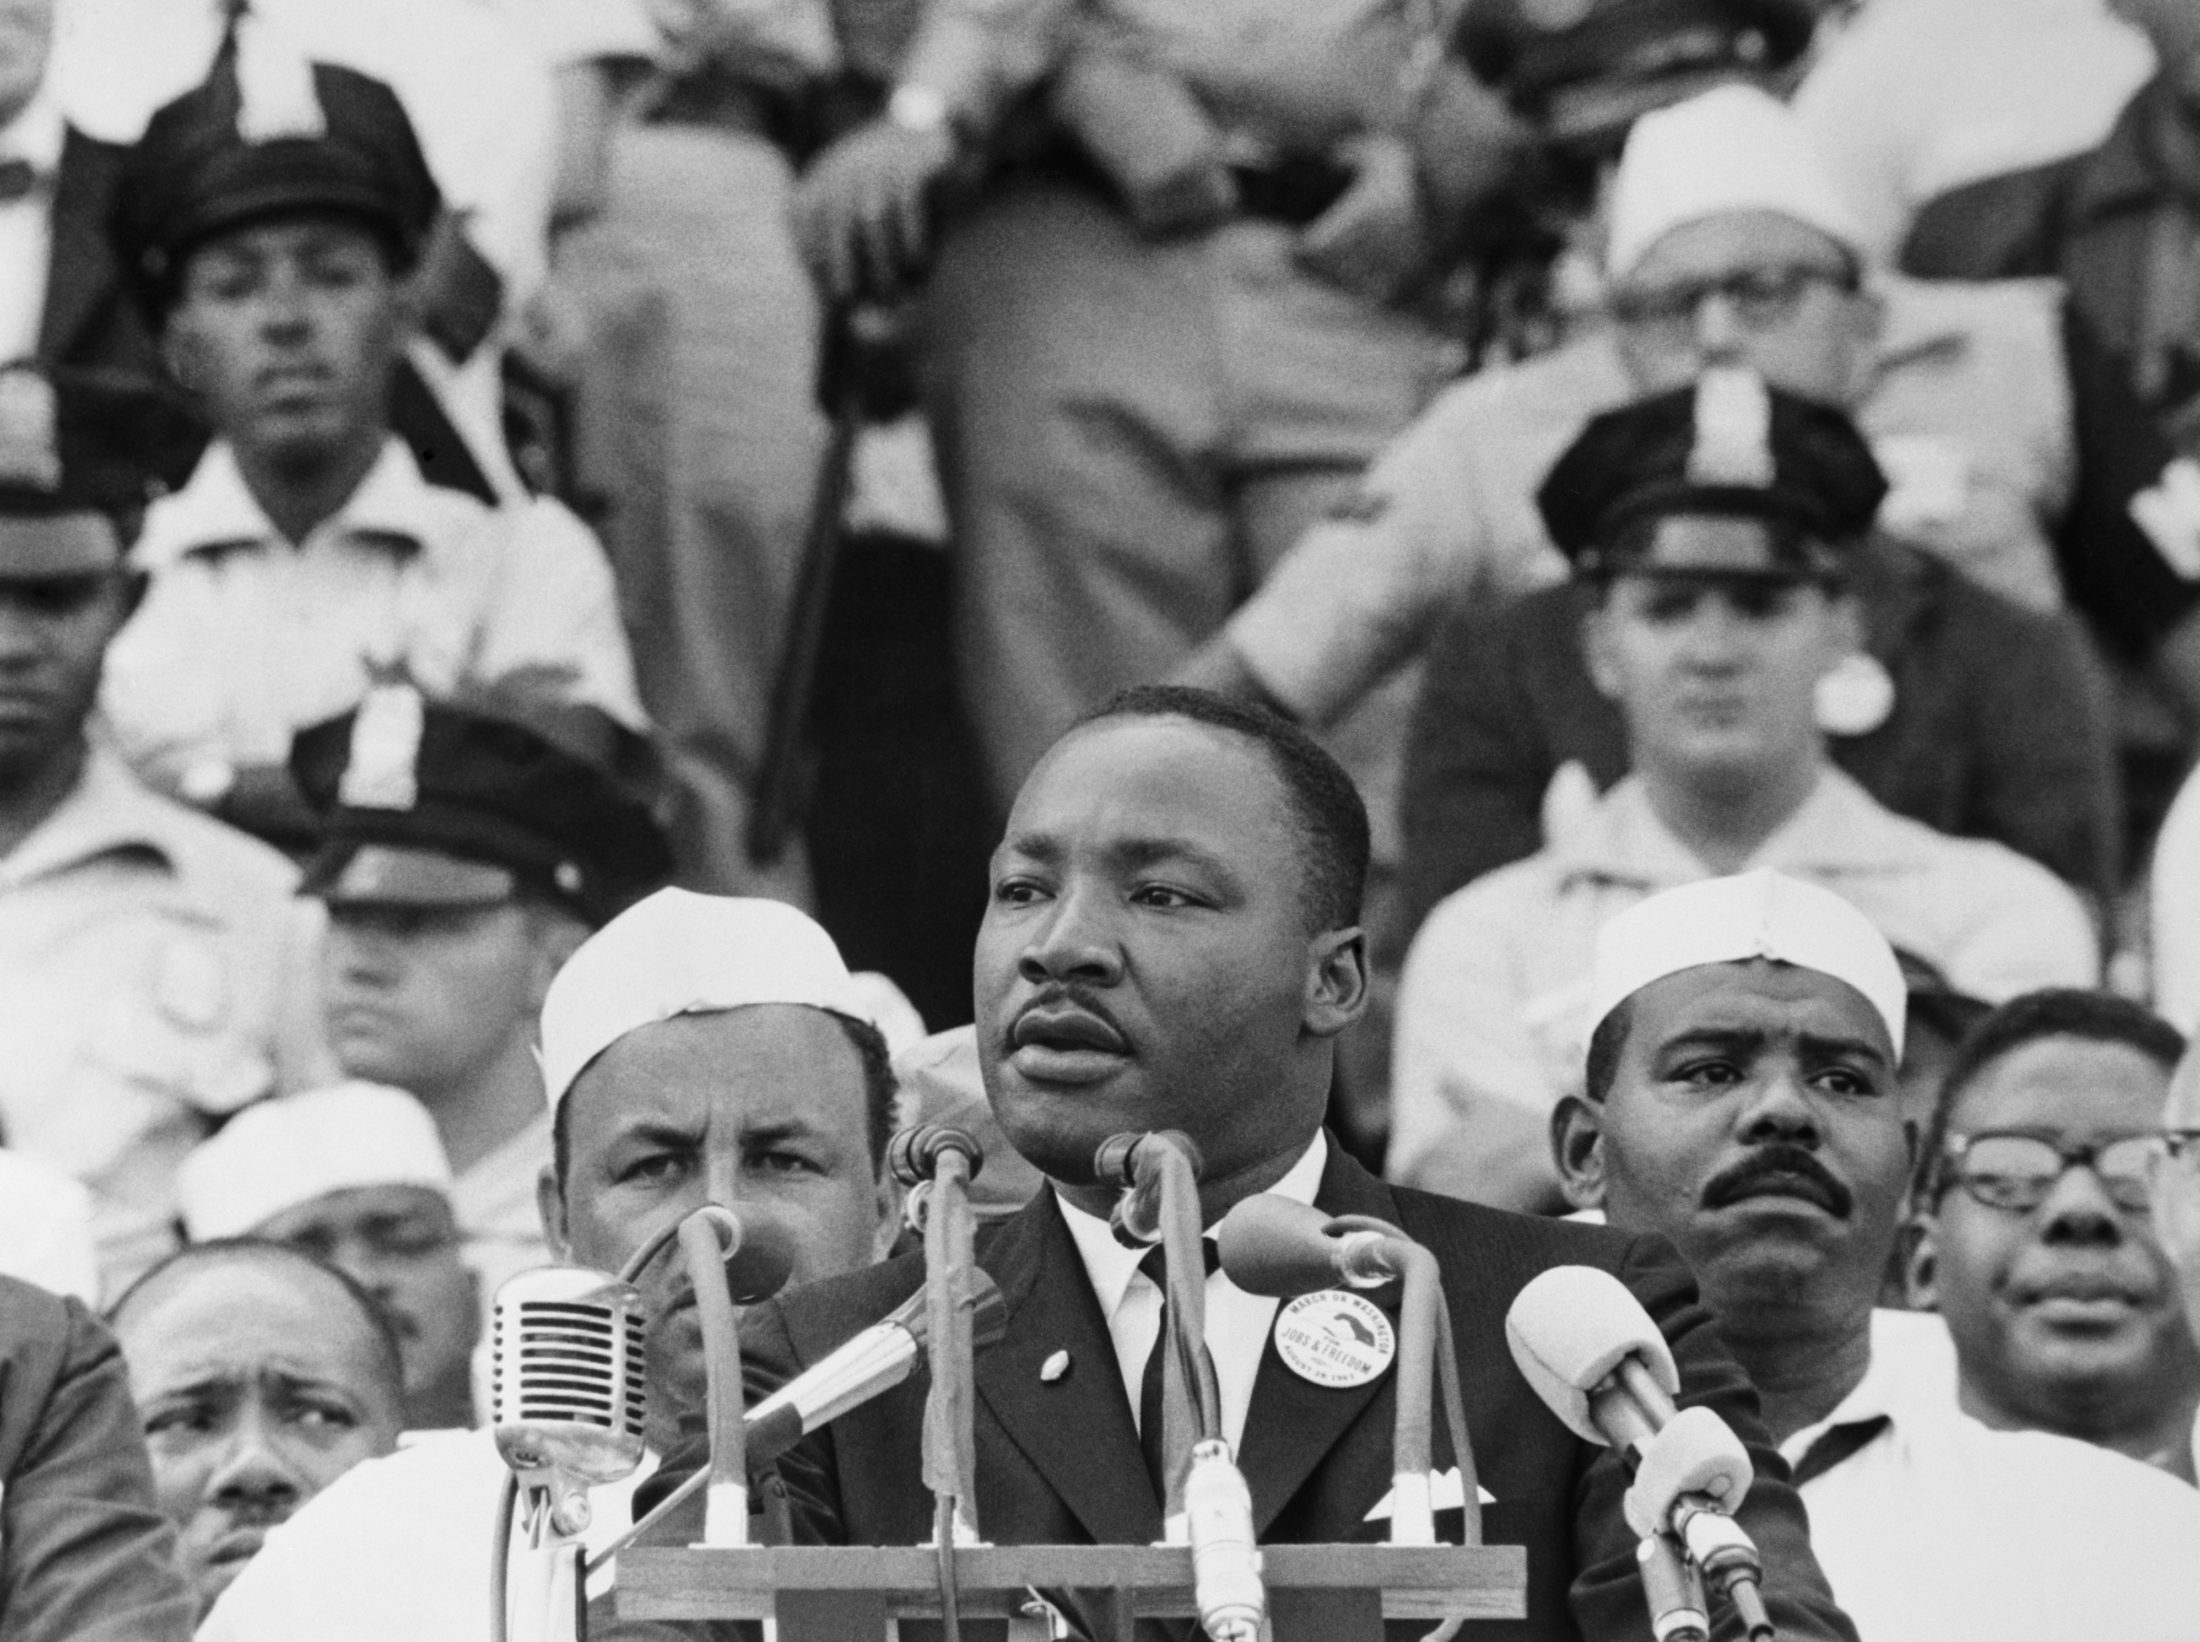 """Martin Luther King Jr., gives his 1963 """"I Have a Dream"""" speech to a crowd before the Lincoln Memorial. Photo by Getty Images"""